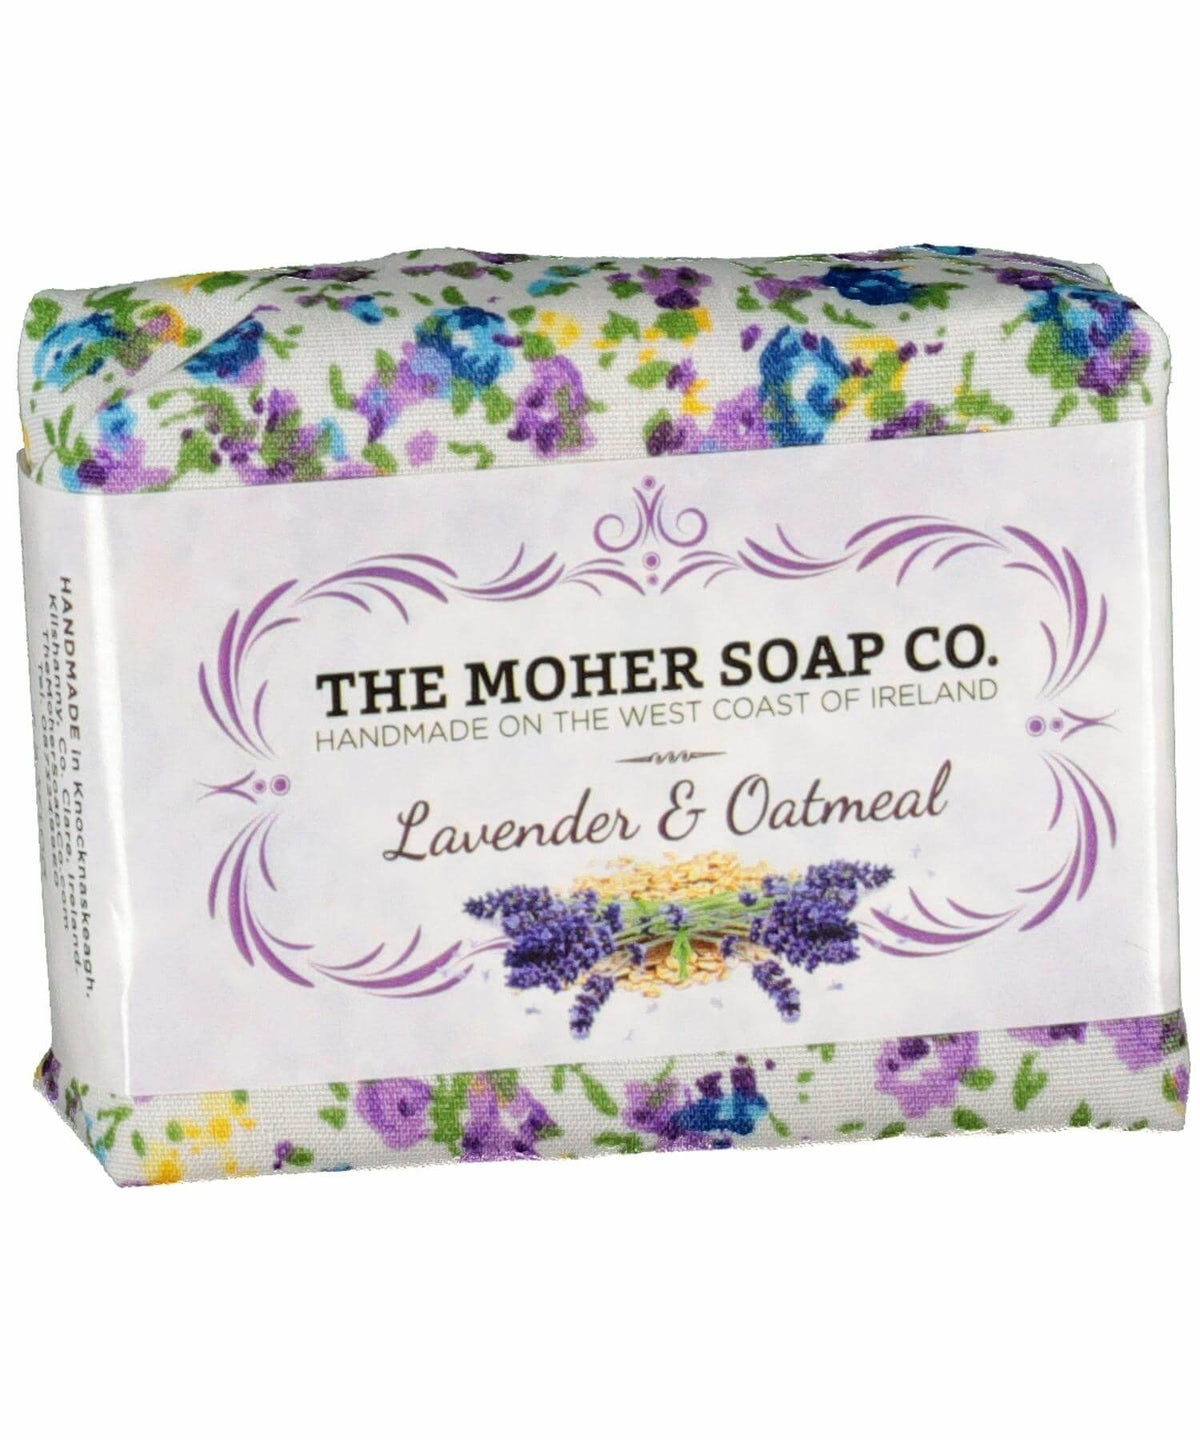 Soap Bar - Lavender & Oatmeal - [The Moher Soap Co.] - Skincare & Beauty - Irish Gifts